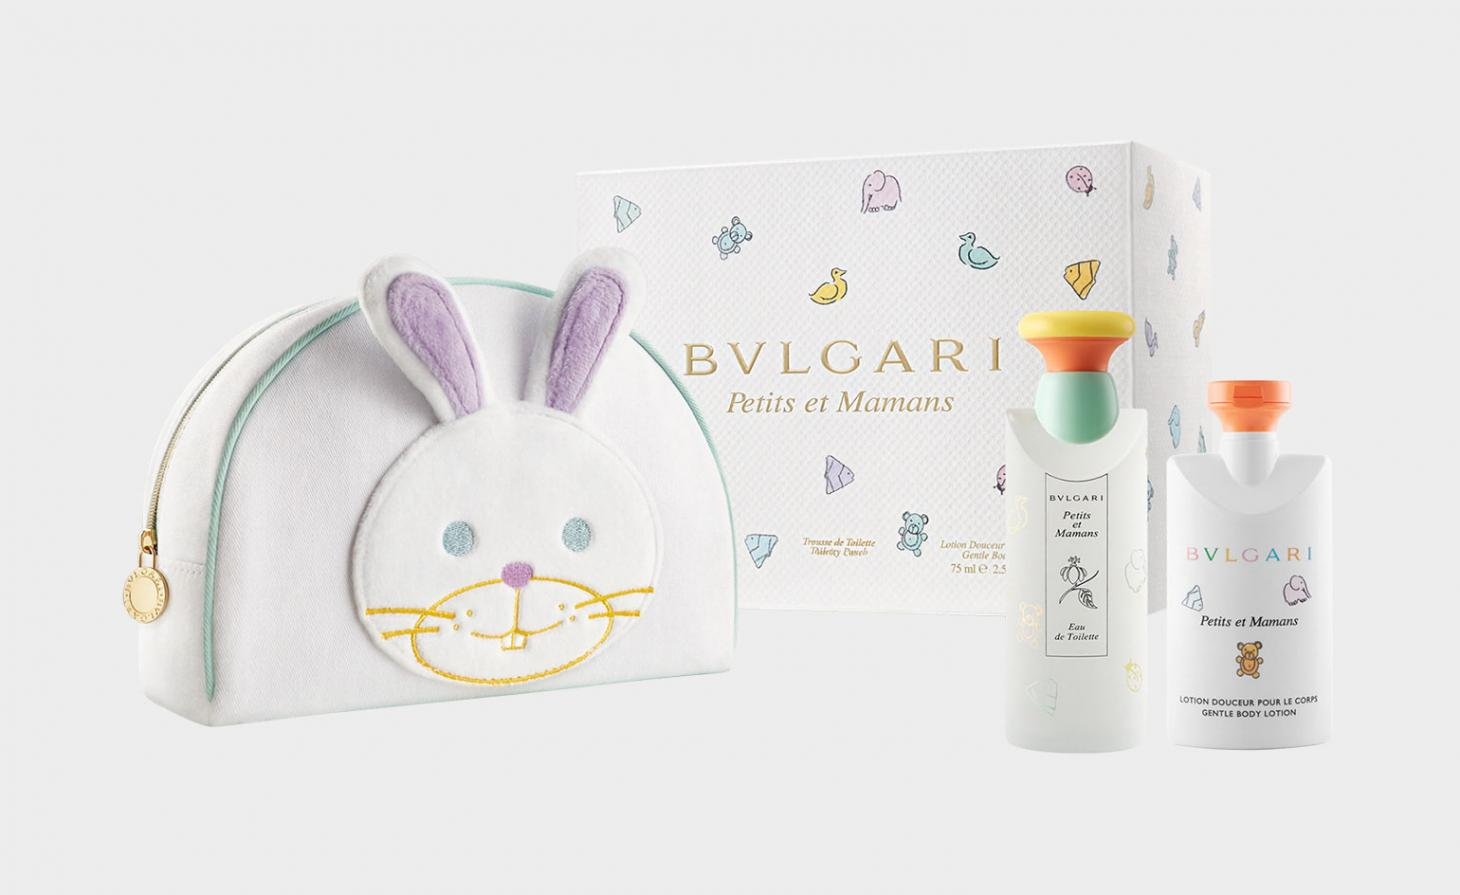 Bulgari children's perfume and body lotion with matching bunny carrying case